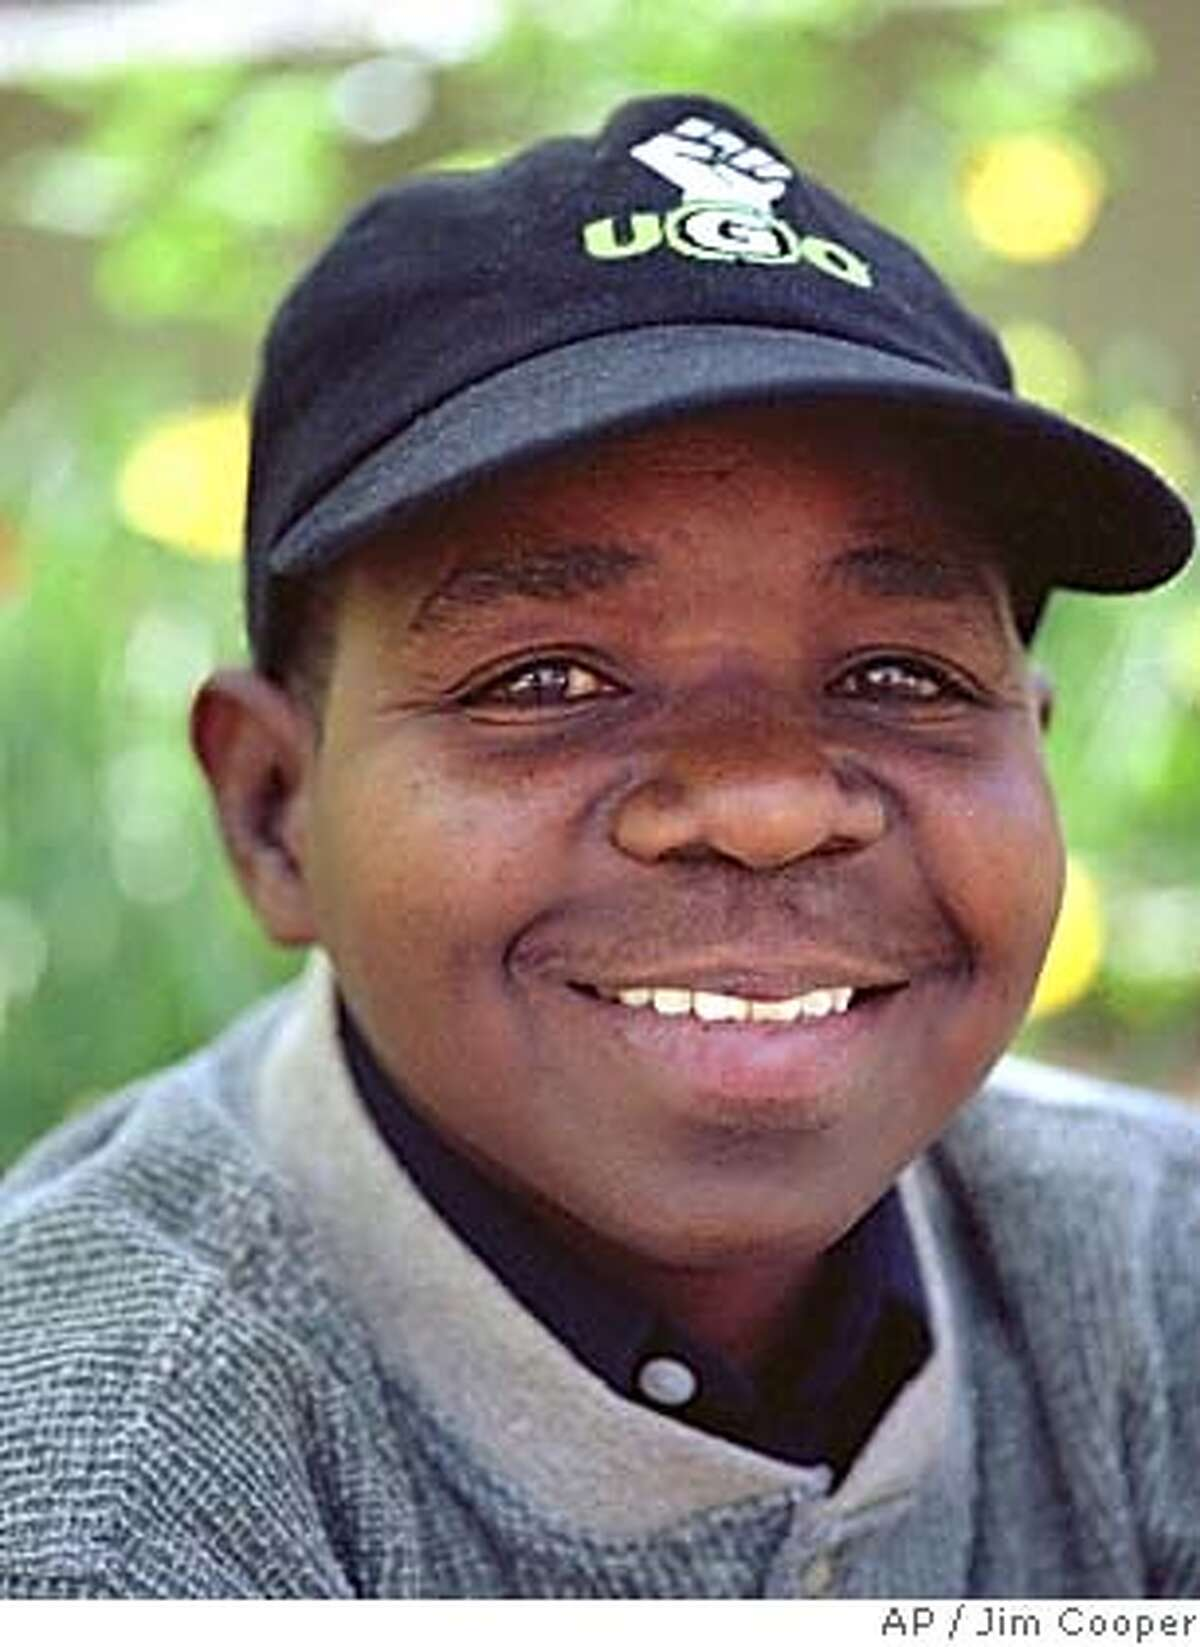 Gary Coleman poses in New York, April 30, 2001. The 33-year-old diminutive star of the '80s sitcom